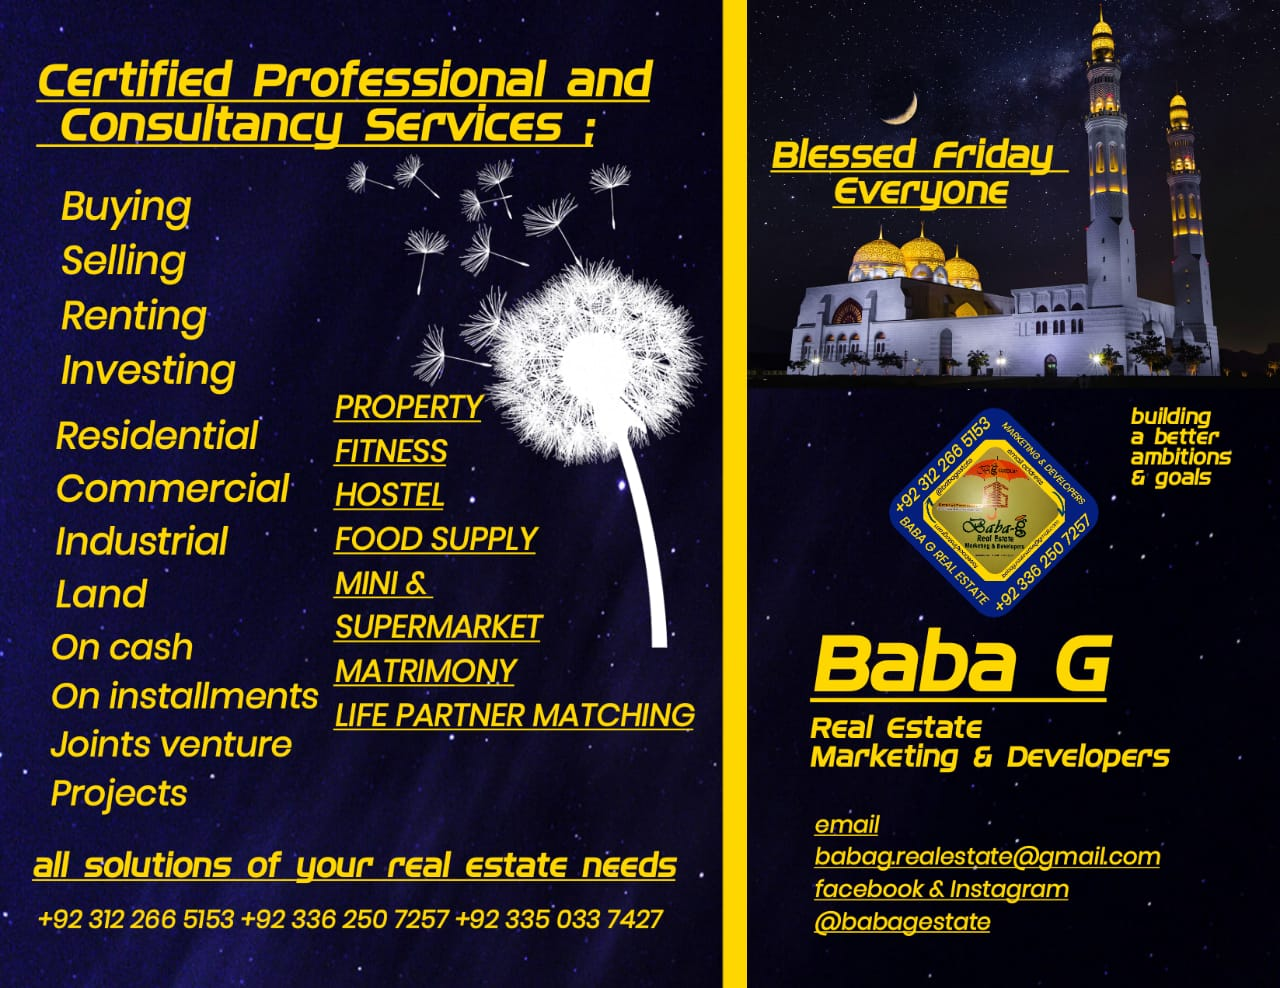 Solutions of your real estate needs and consultancy services!